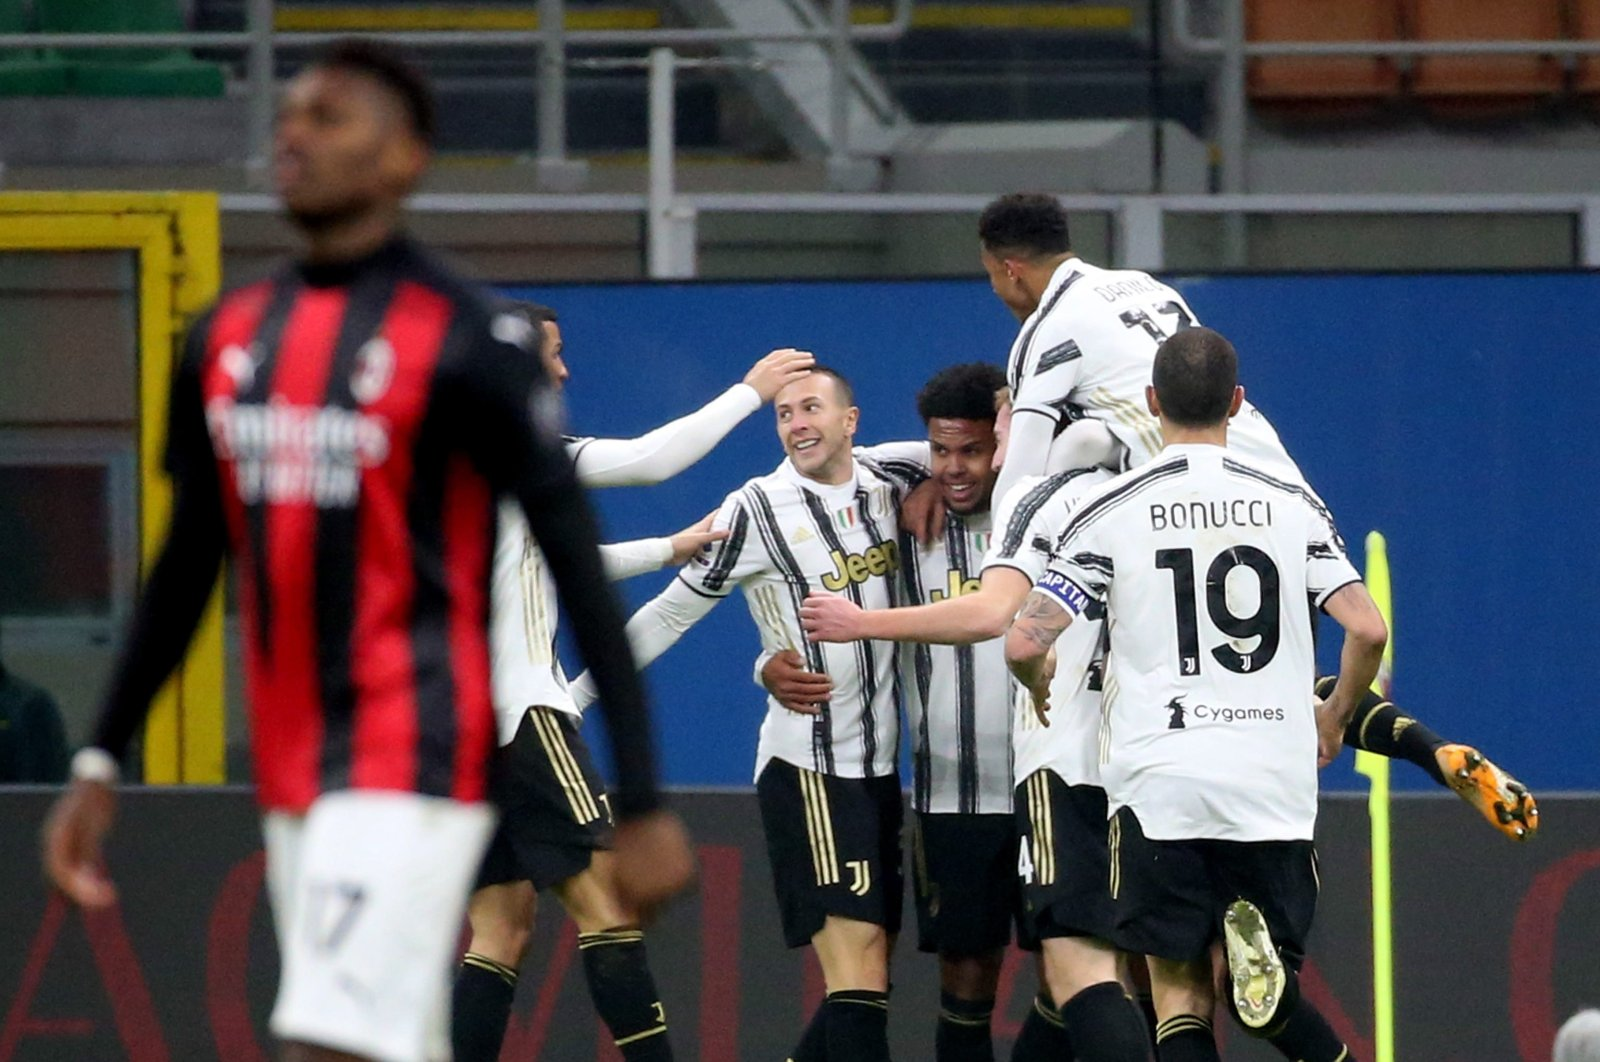 Juventus players celebrate a goal during a Serie A match against AC Milan at the Giuseppe Meazza stadium in Milan, Italy, Jan. 6, 2021. (AFP Photo)